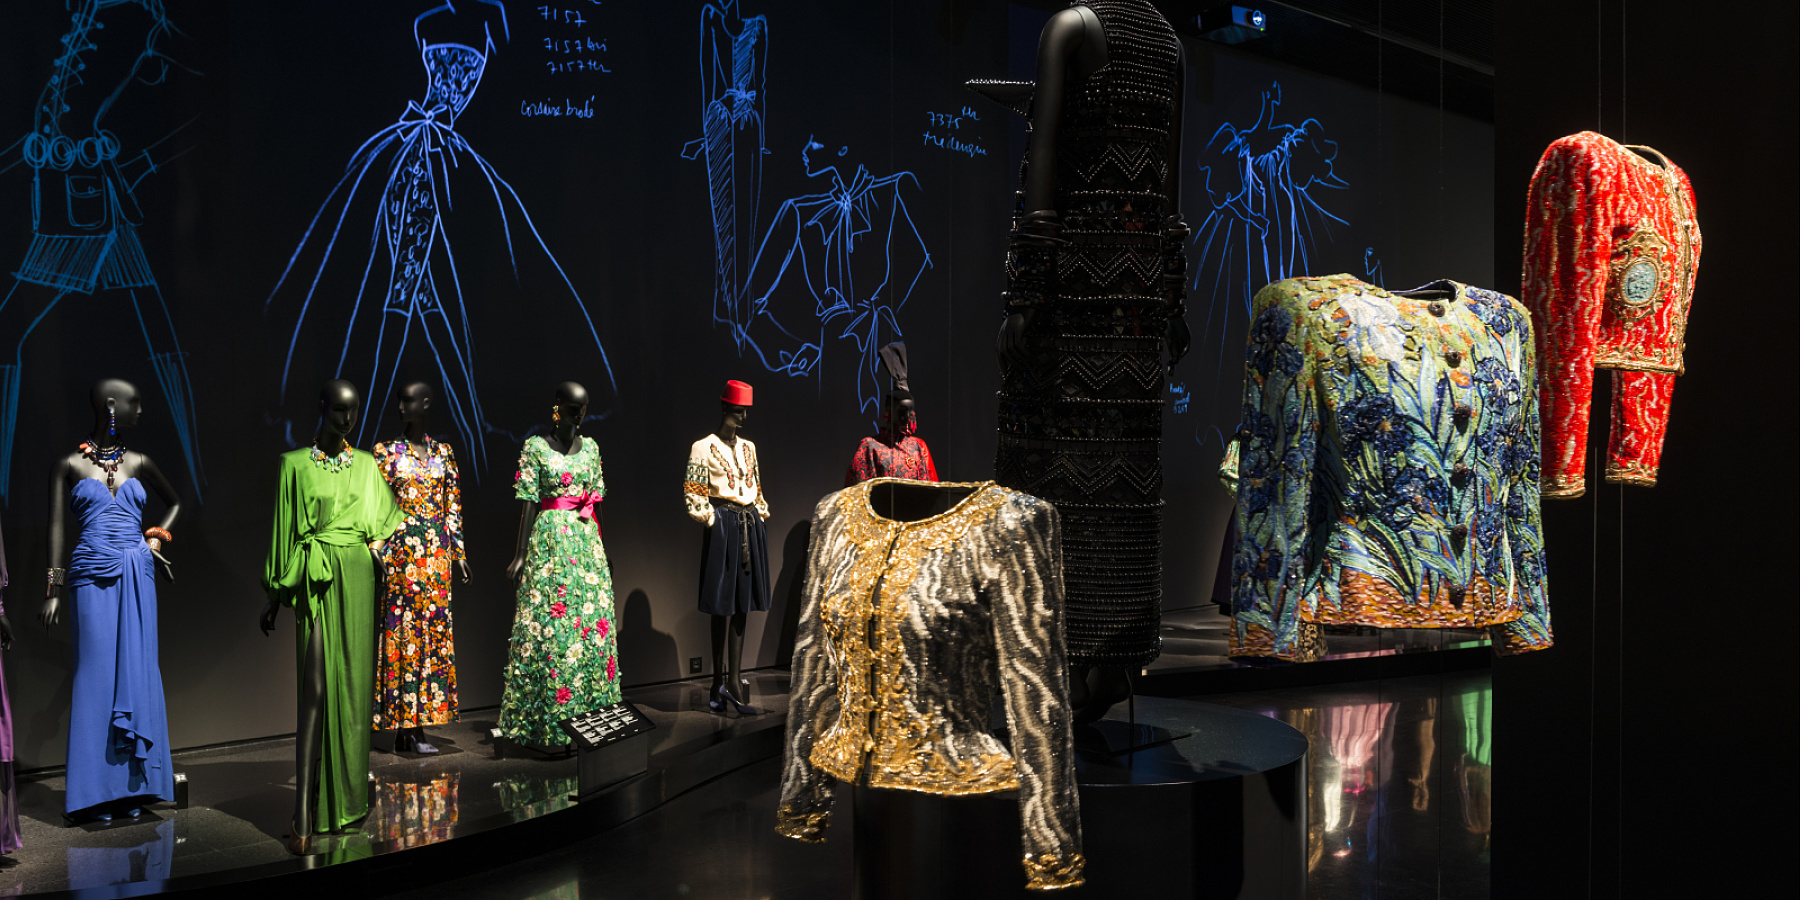 Yves Saint Laurent Museum, Marrakesch, Marrakech, Marokko